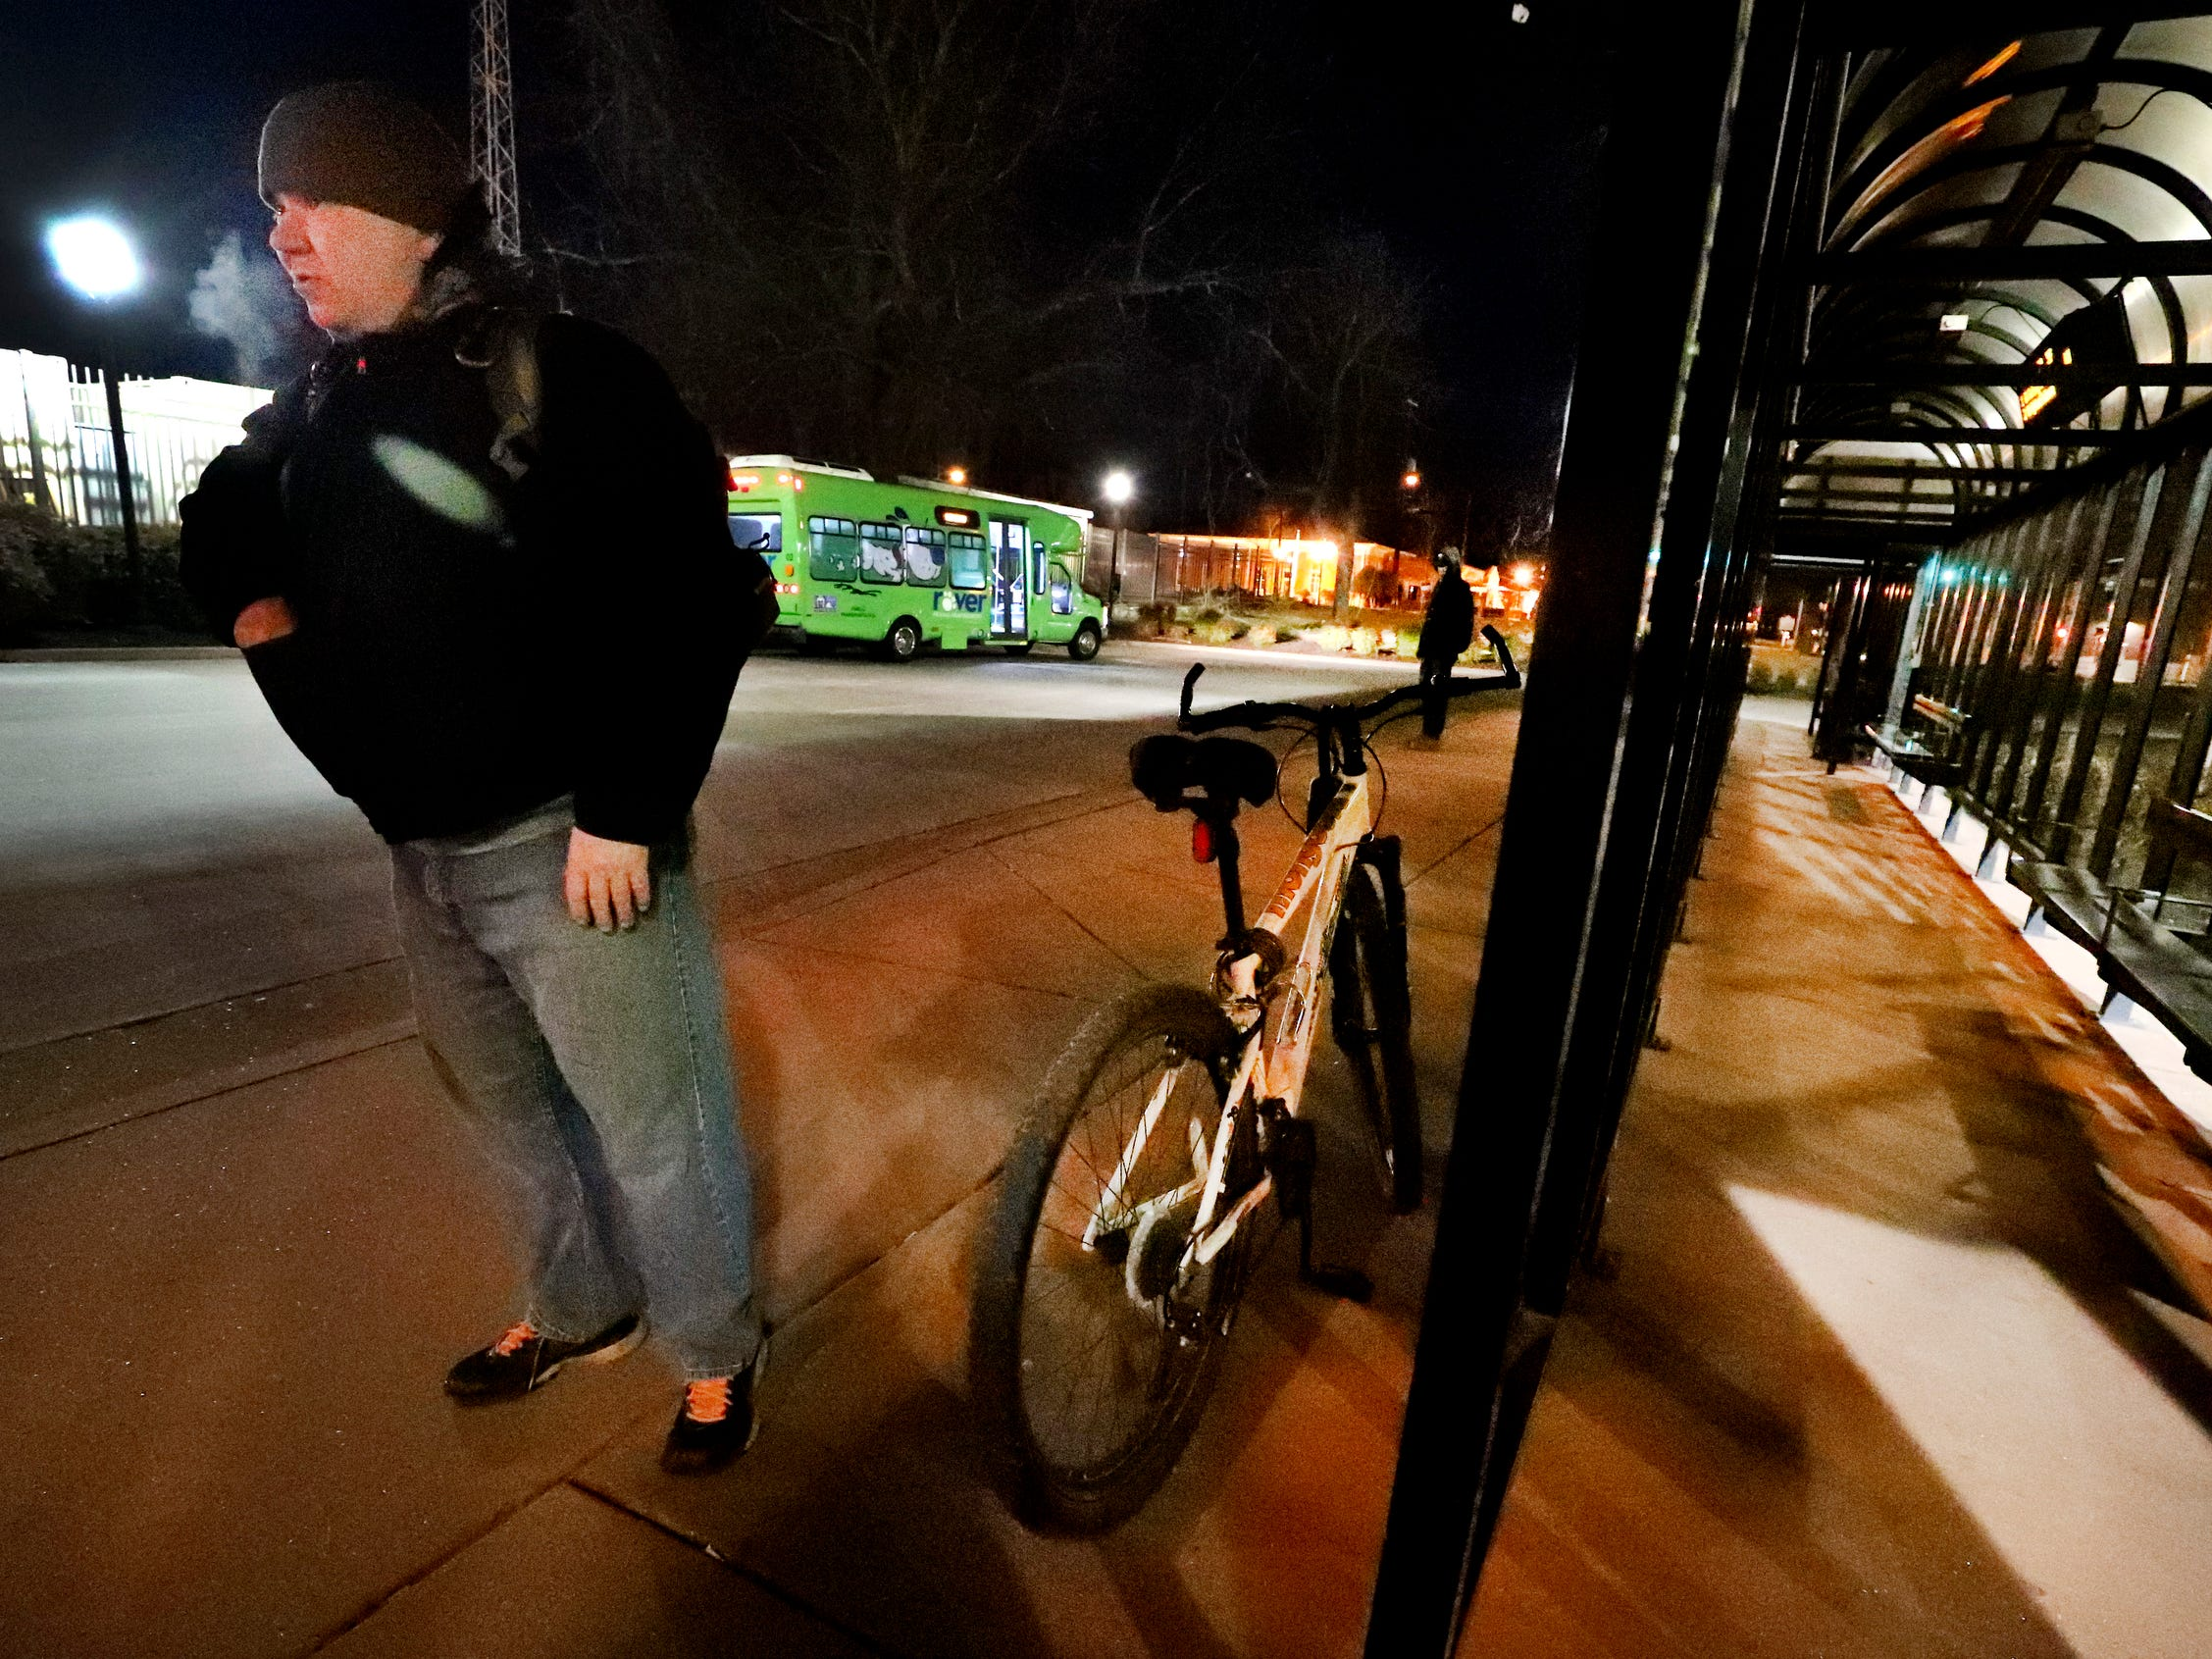 Daniel Zienkiewicz gets to wait a few minutes before his bus arrives on Wednesday, March 18, 2019, in Murfreesboro, Tenn.. Zienkiewicz said that the bus stop has heaters but they aren't turned on early enough for him to use but he said he was already warm from the bike ride anyway.